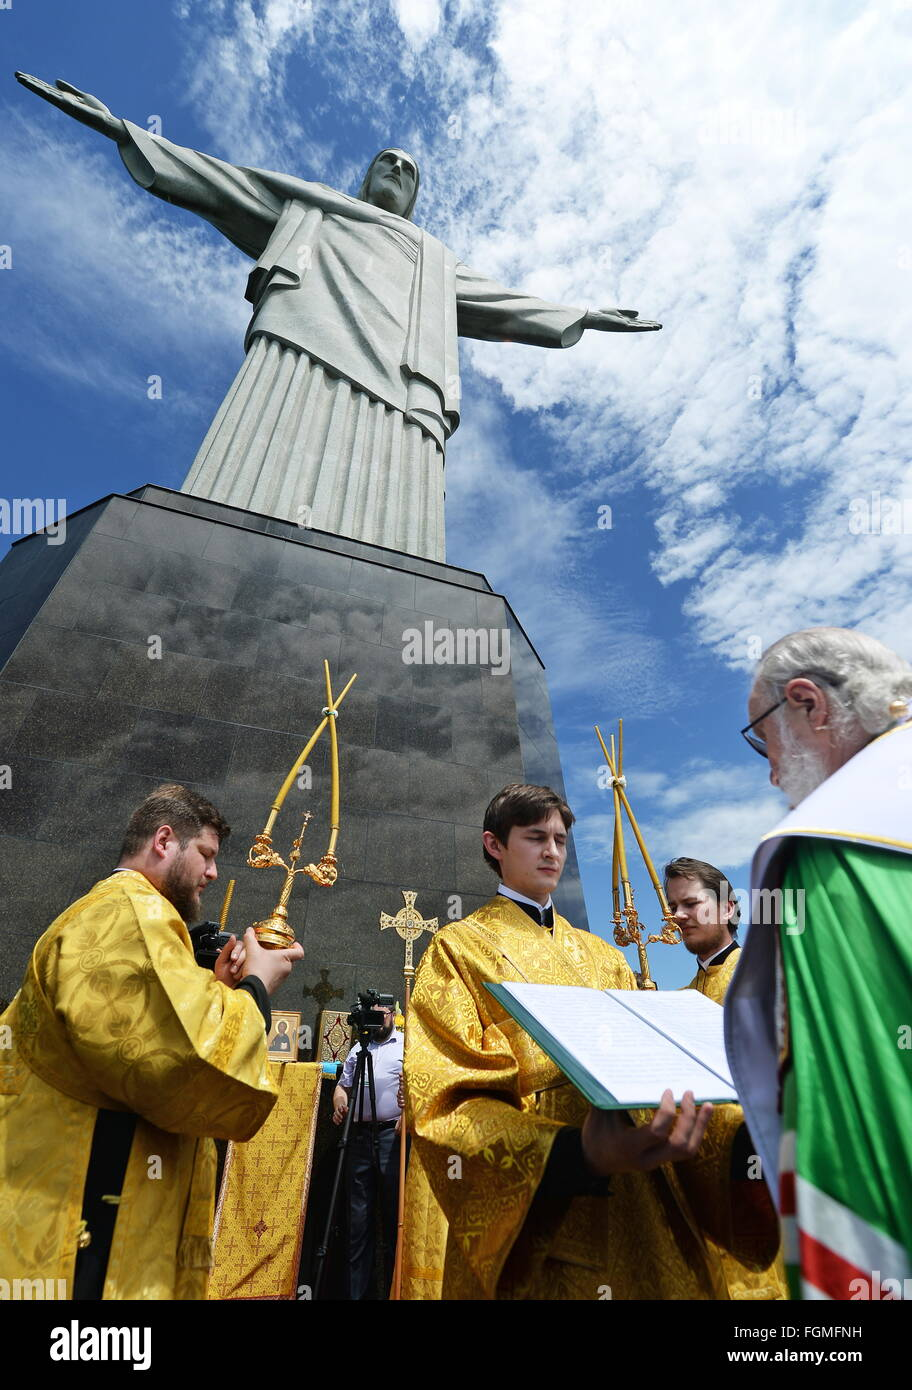 RIO-DE-JANEIRO, BRAZIL.FEBRUARY 19, 2016. Patriarch Kirill (R) of Moscow and All Russia conducts a service by he Stock Photo